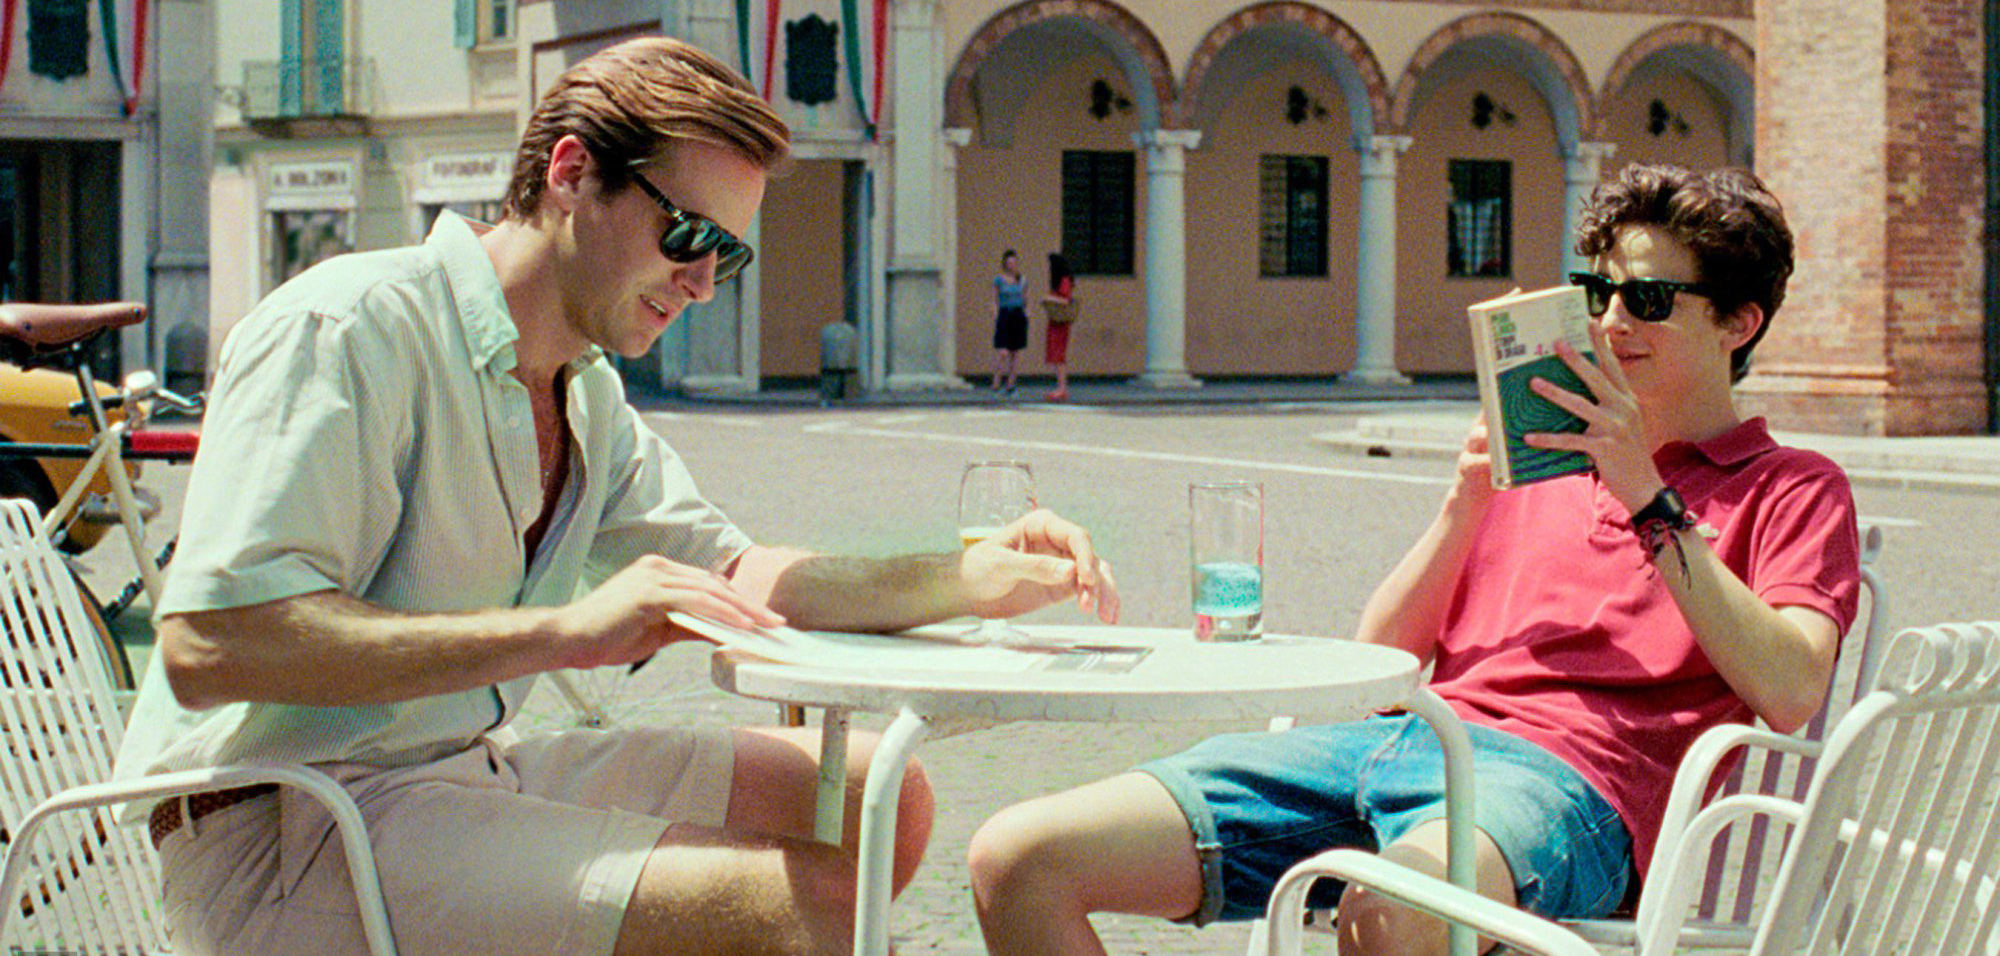 Call Me By Your Name film still